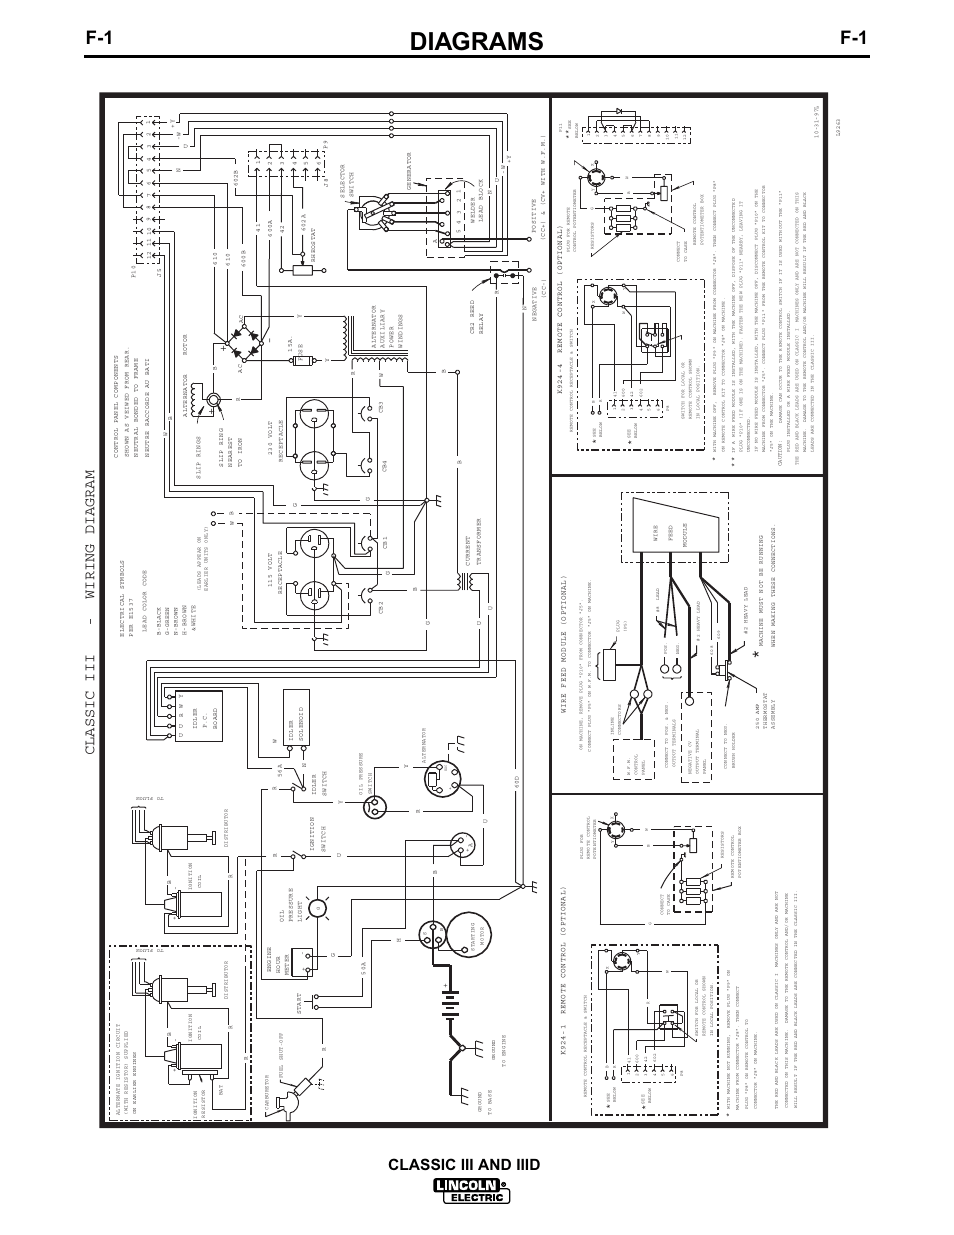 hight resolution of diagrams classic iii and iiid classic iii wiring diagram lincoln electric im529